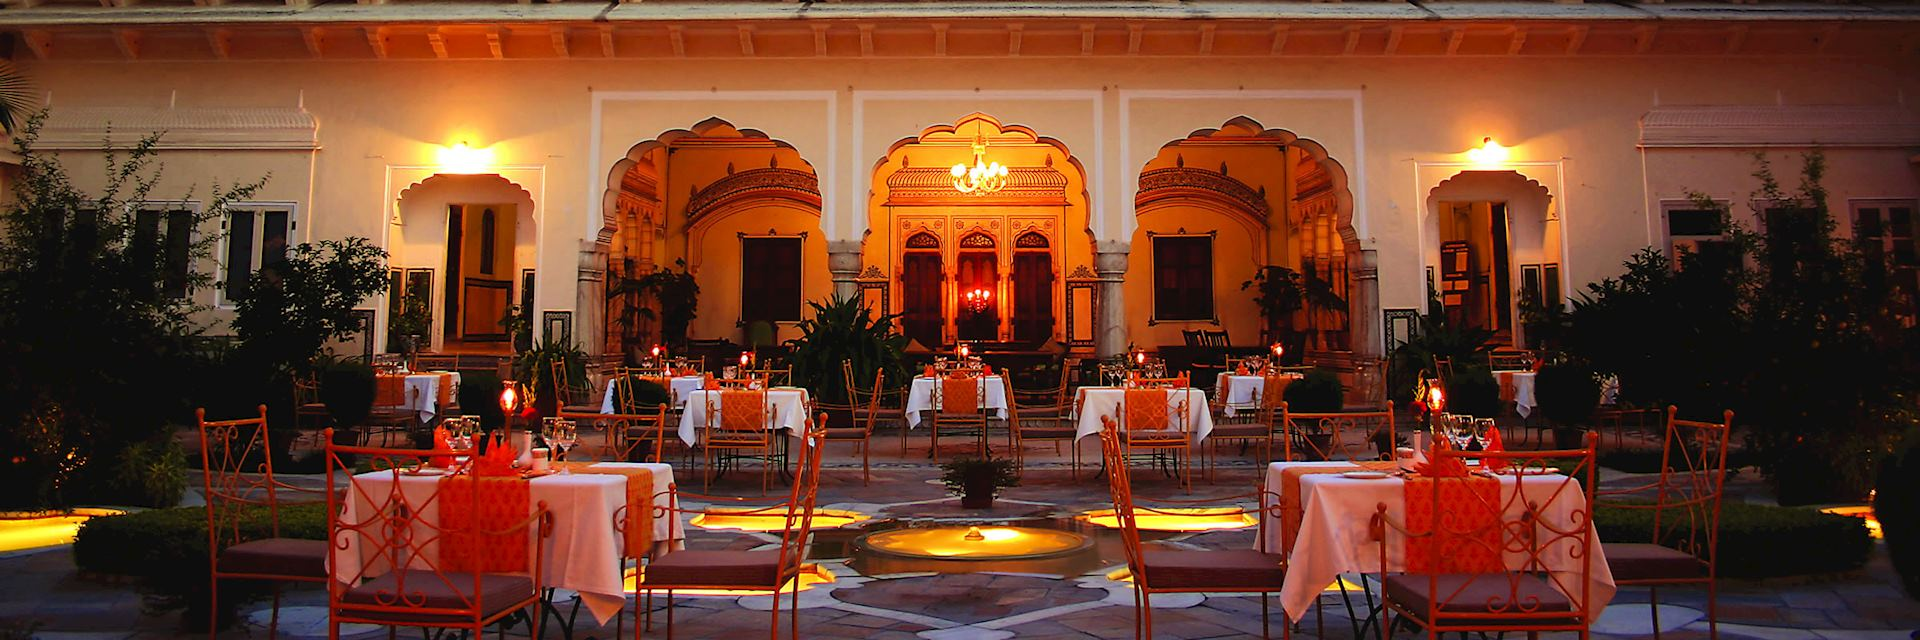 Courtyard dining at the Samode Haveli, Jaipur